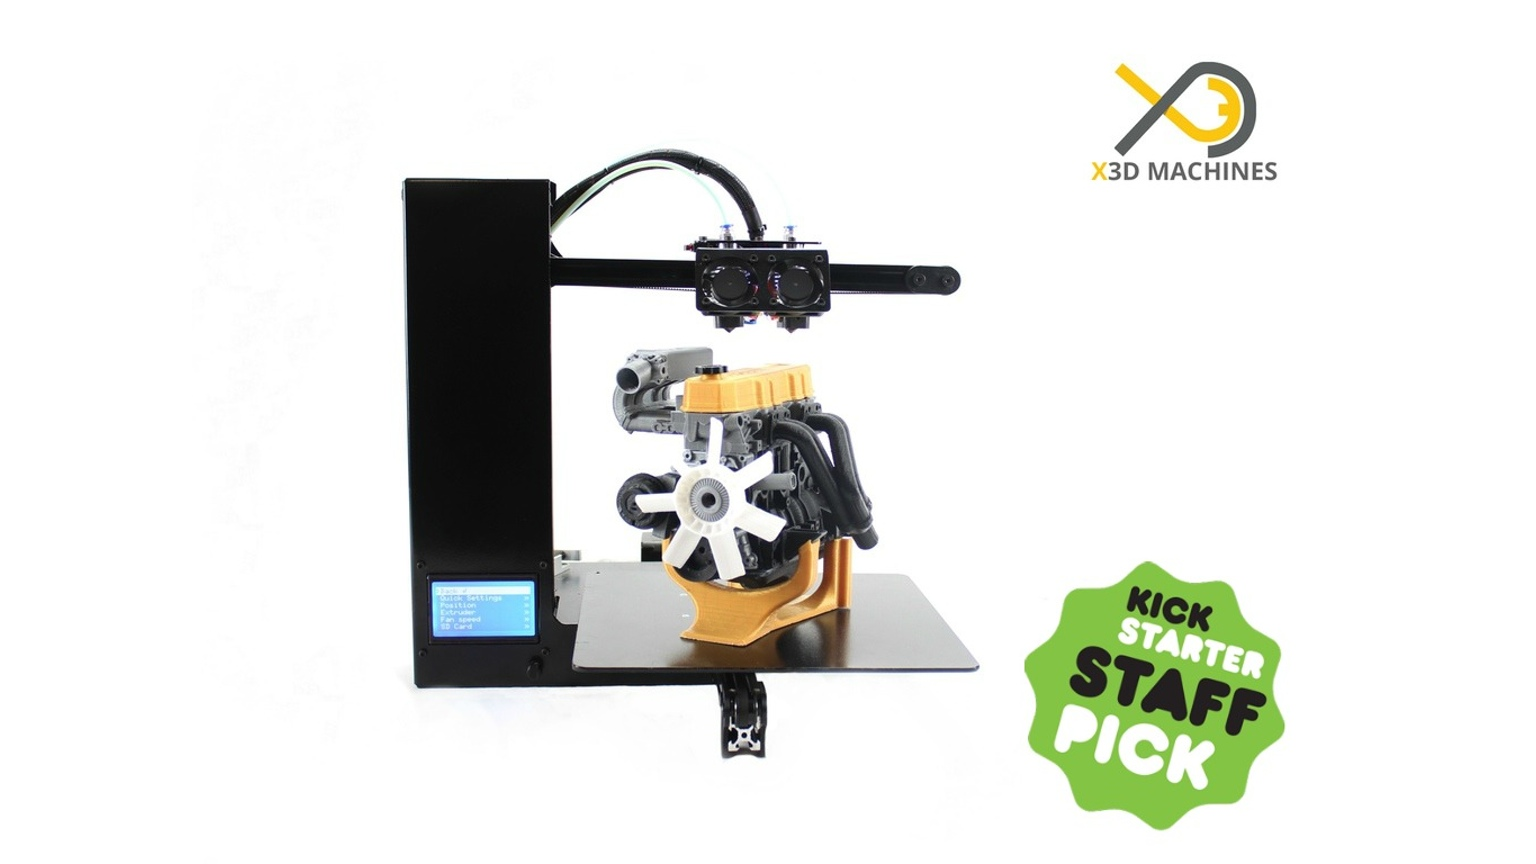 The ill-fated Genesis 3D printer from XMachines